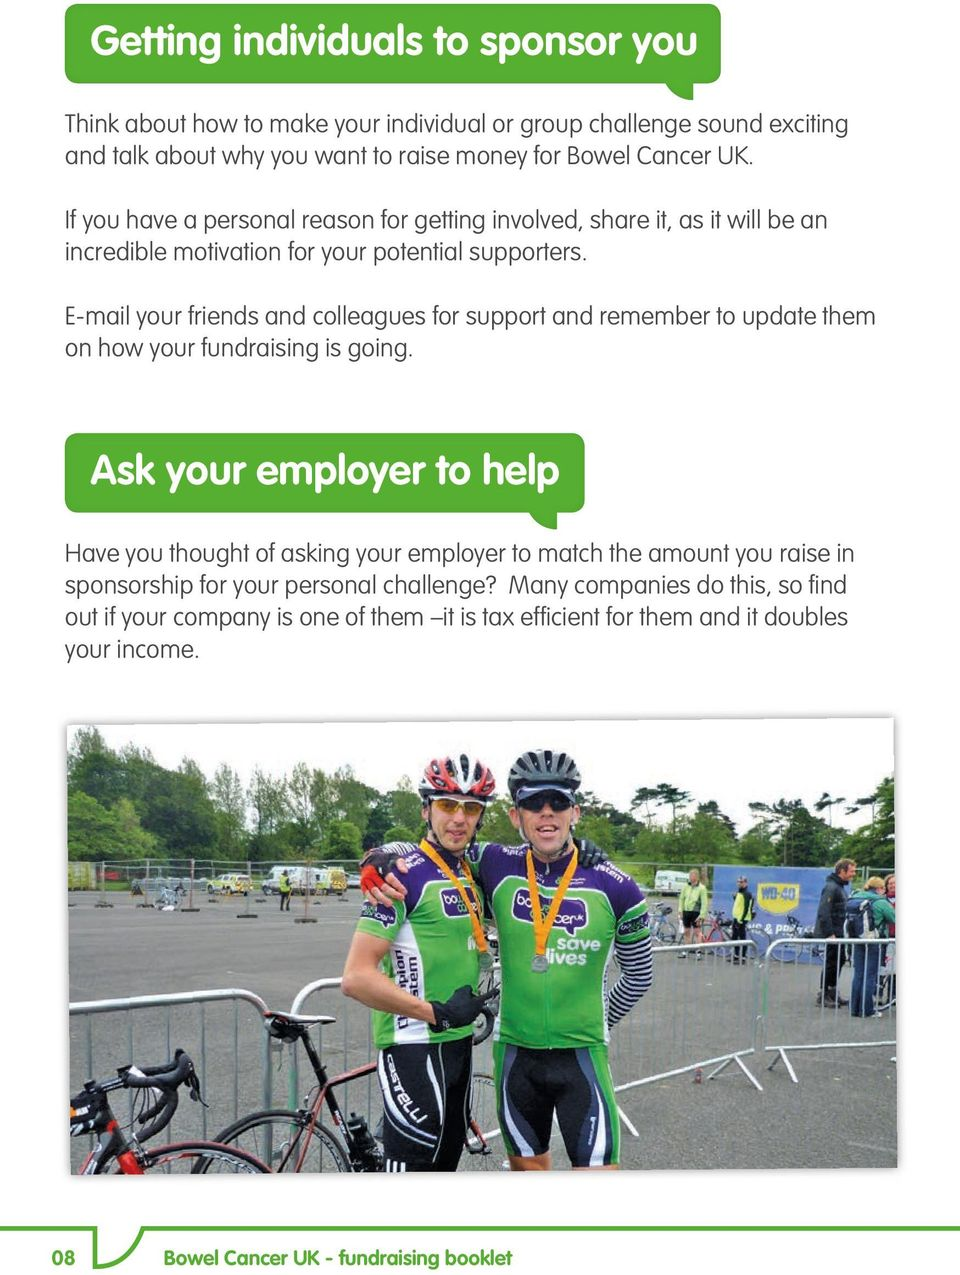 E-mail your friends and colleagues for support and remember to update them on how your fundraising is going.